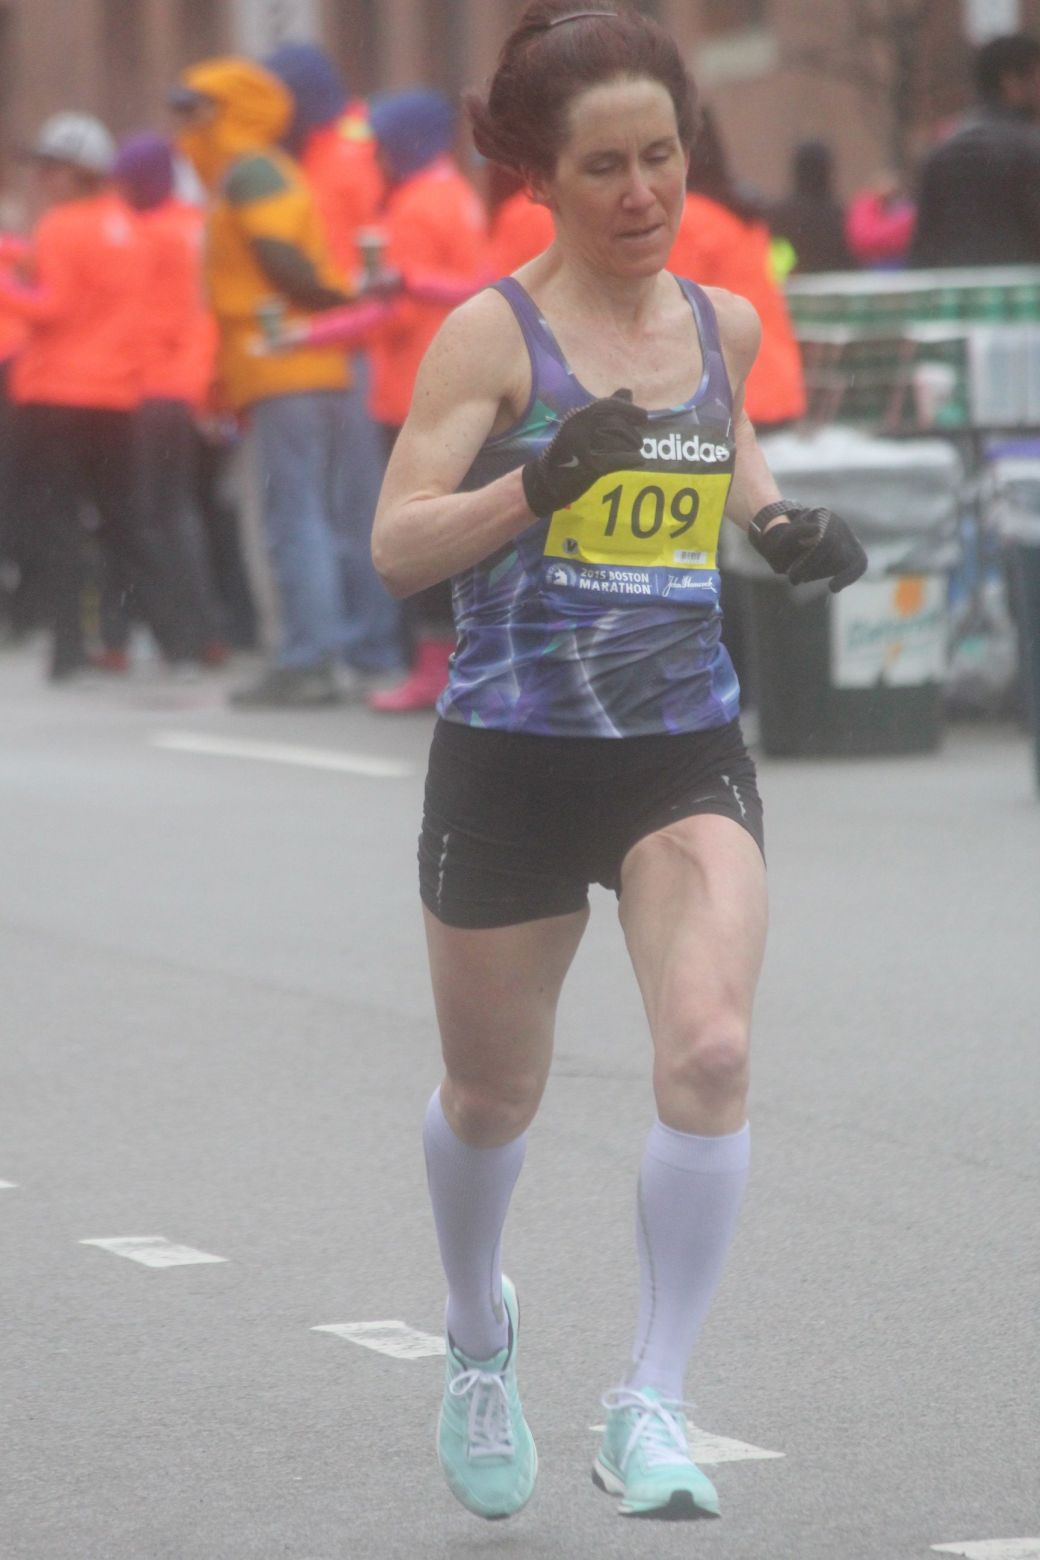 boston marathon april 20 2015 racer number 109